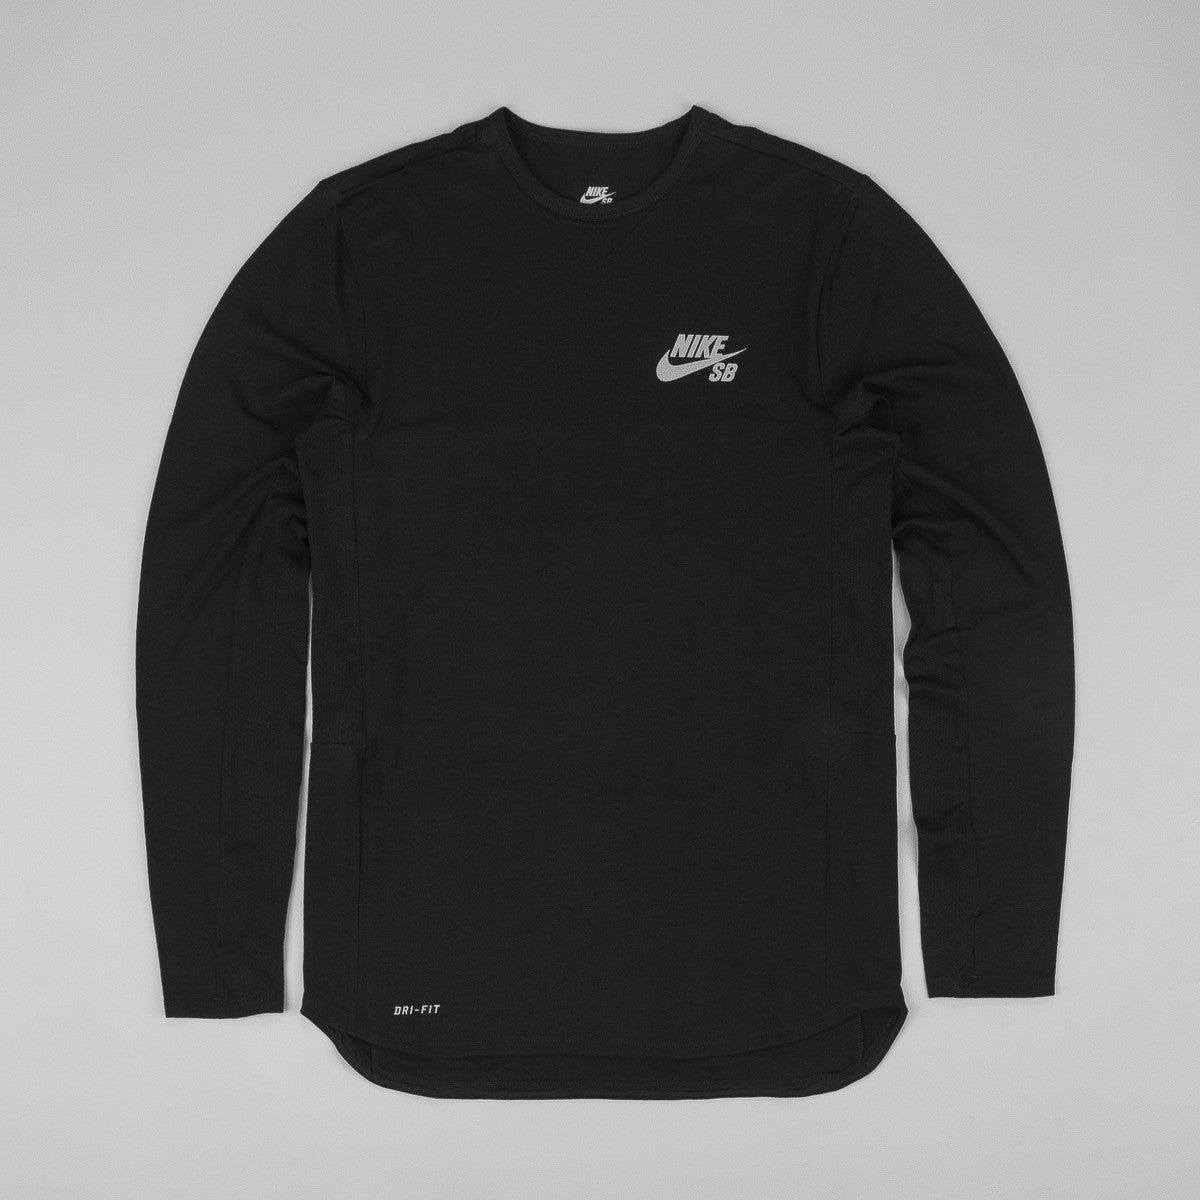 Nike SB Dri-Fit Skyline Cool Crew L/S T-Shirt - Black / Reflective